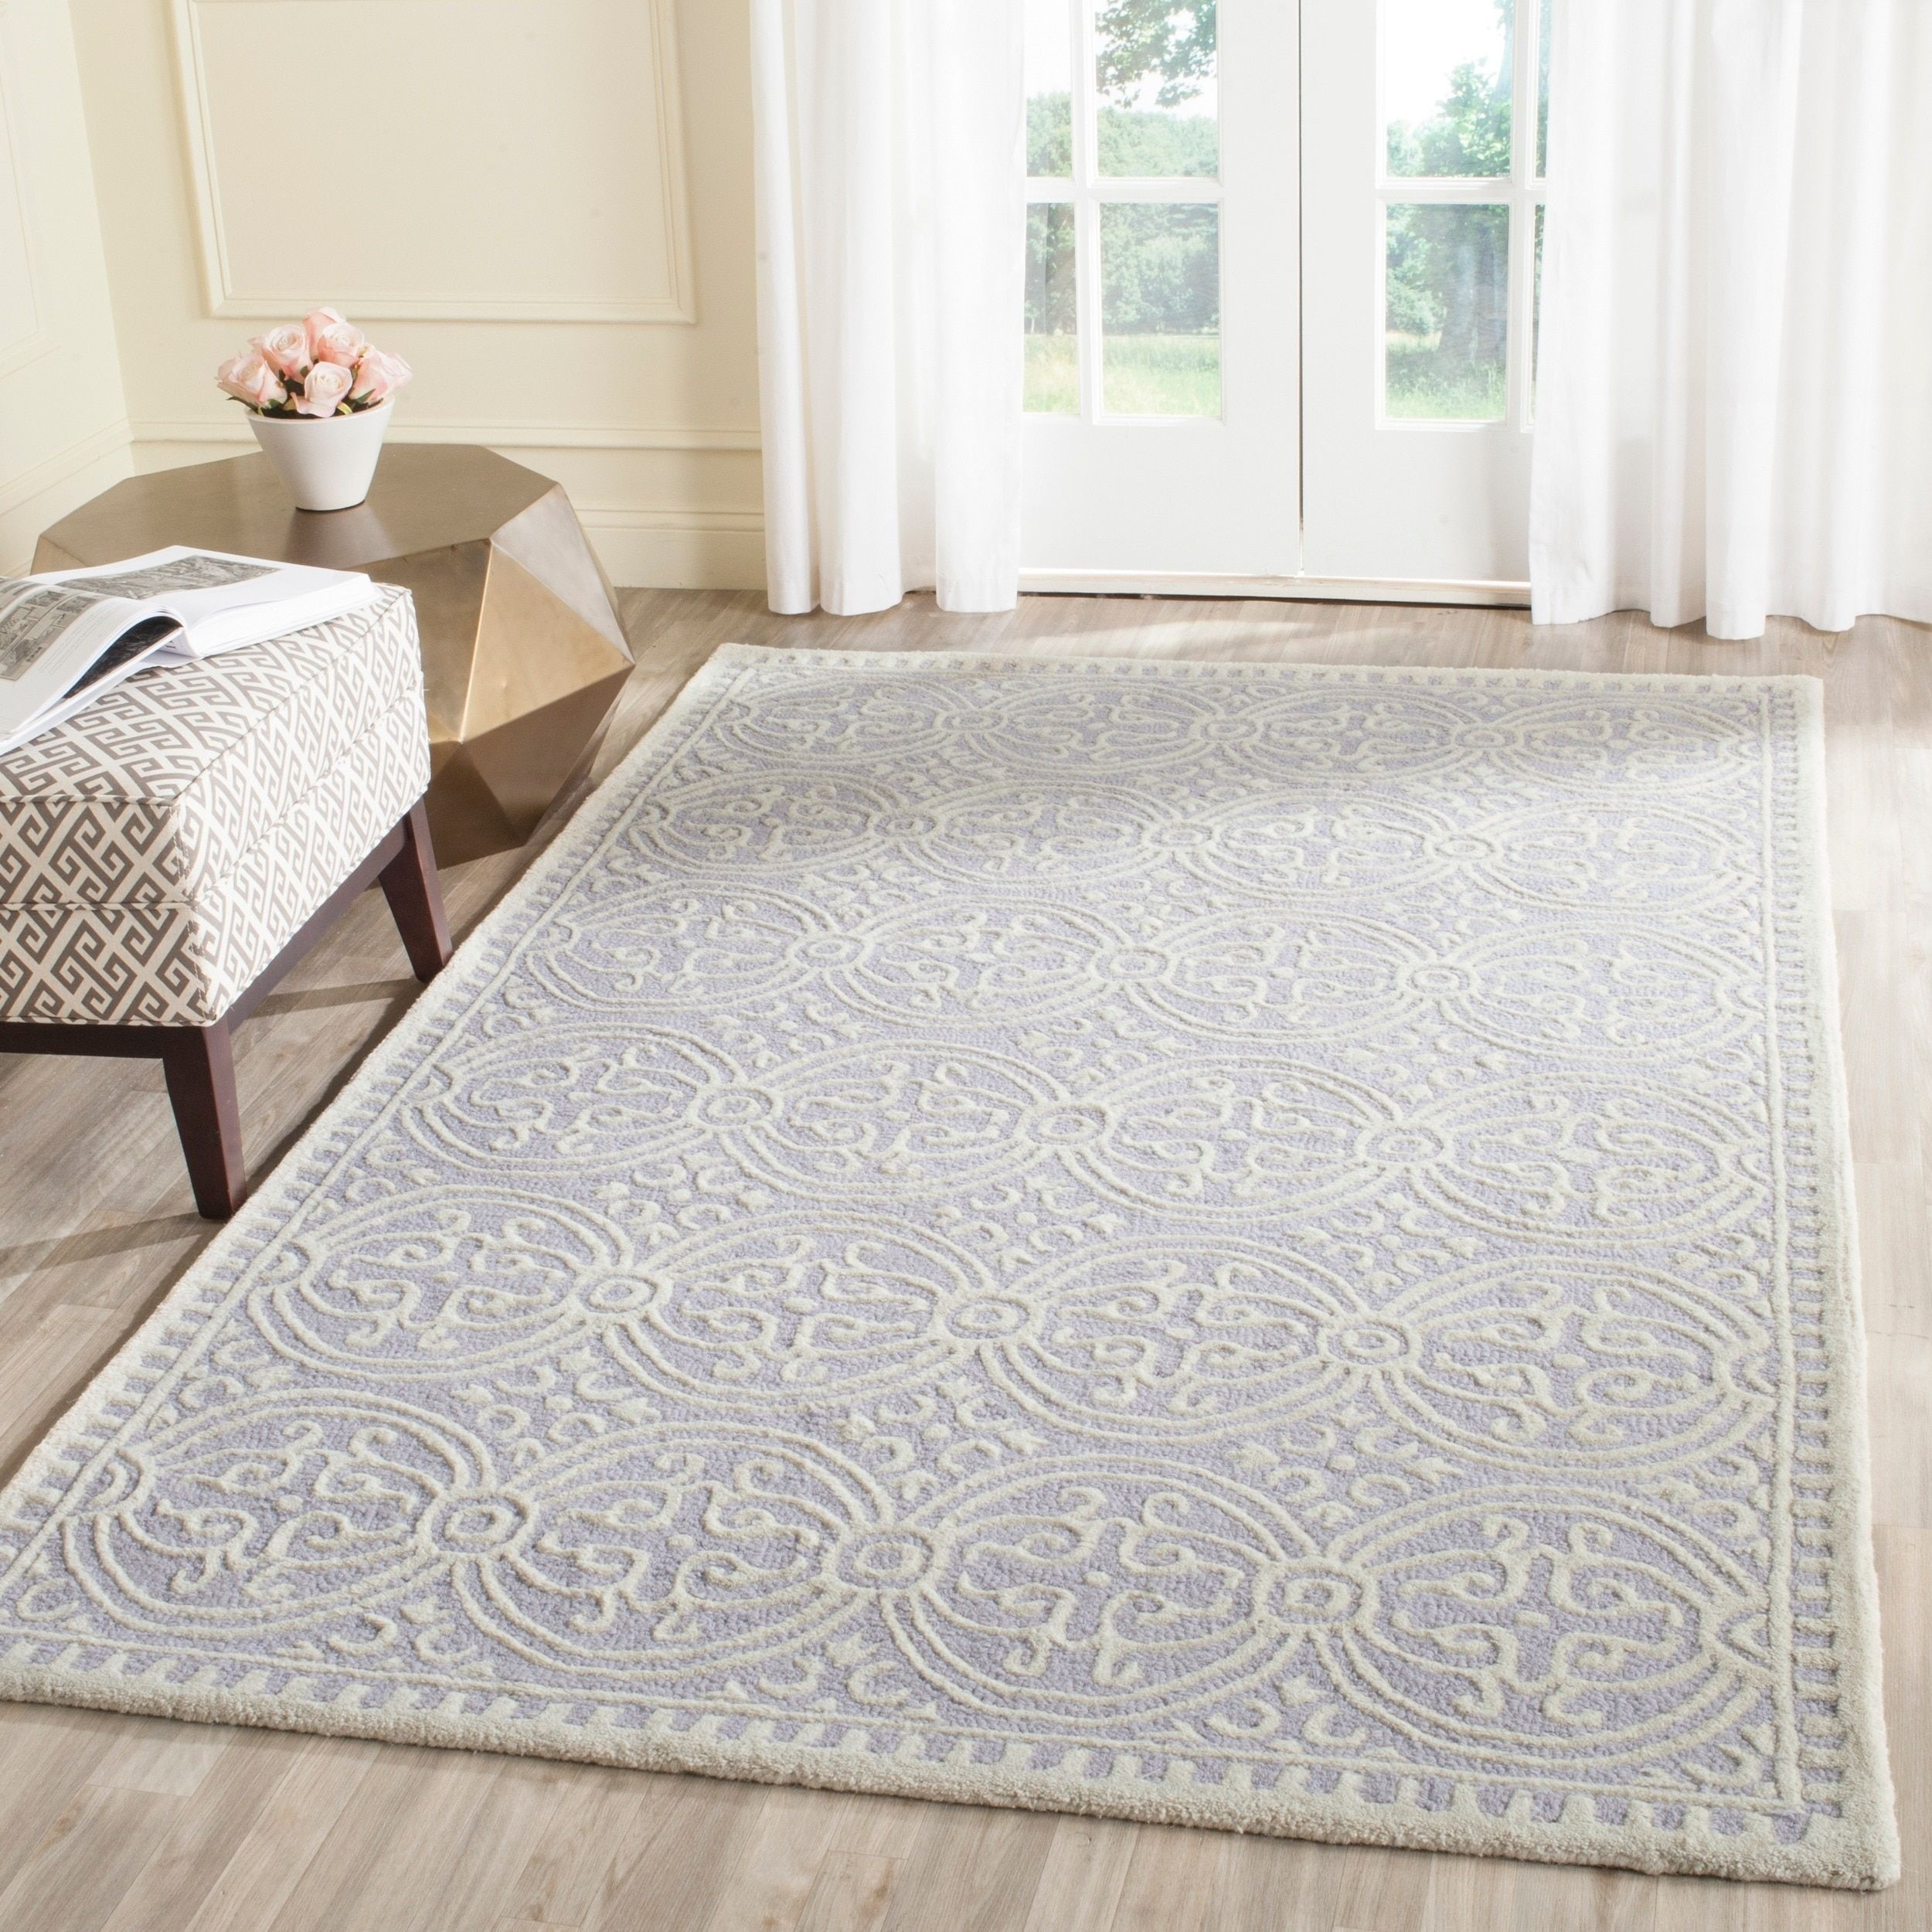 Purple Area Rugs Free Shipping On Orders Over 45 Find The Perfect Rug